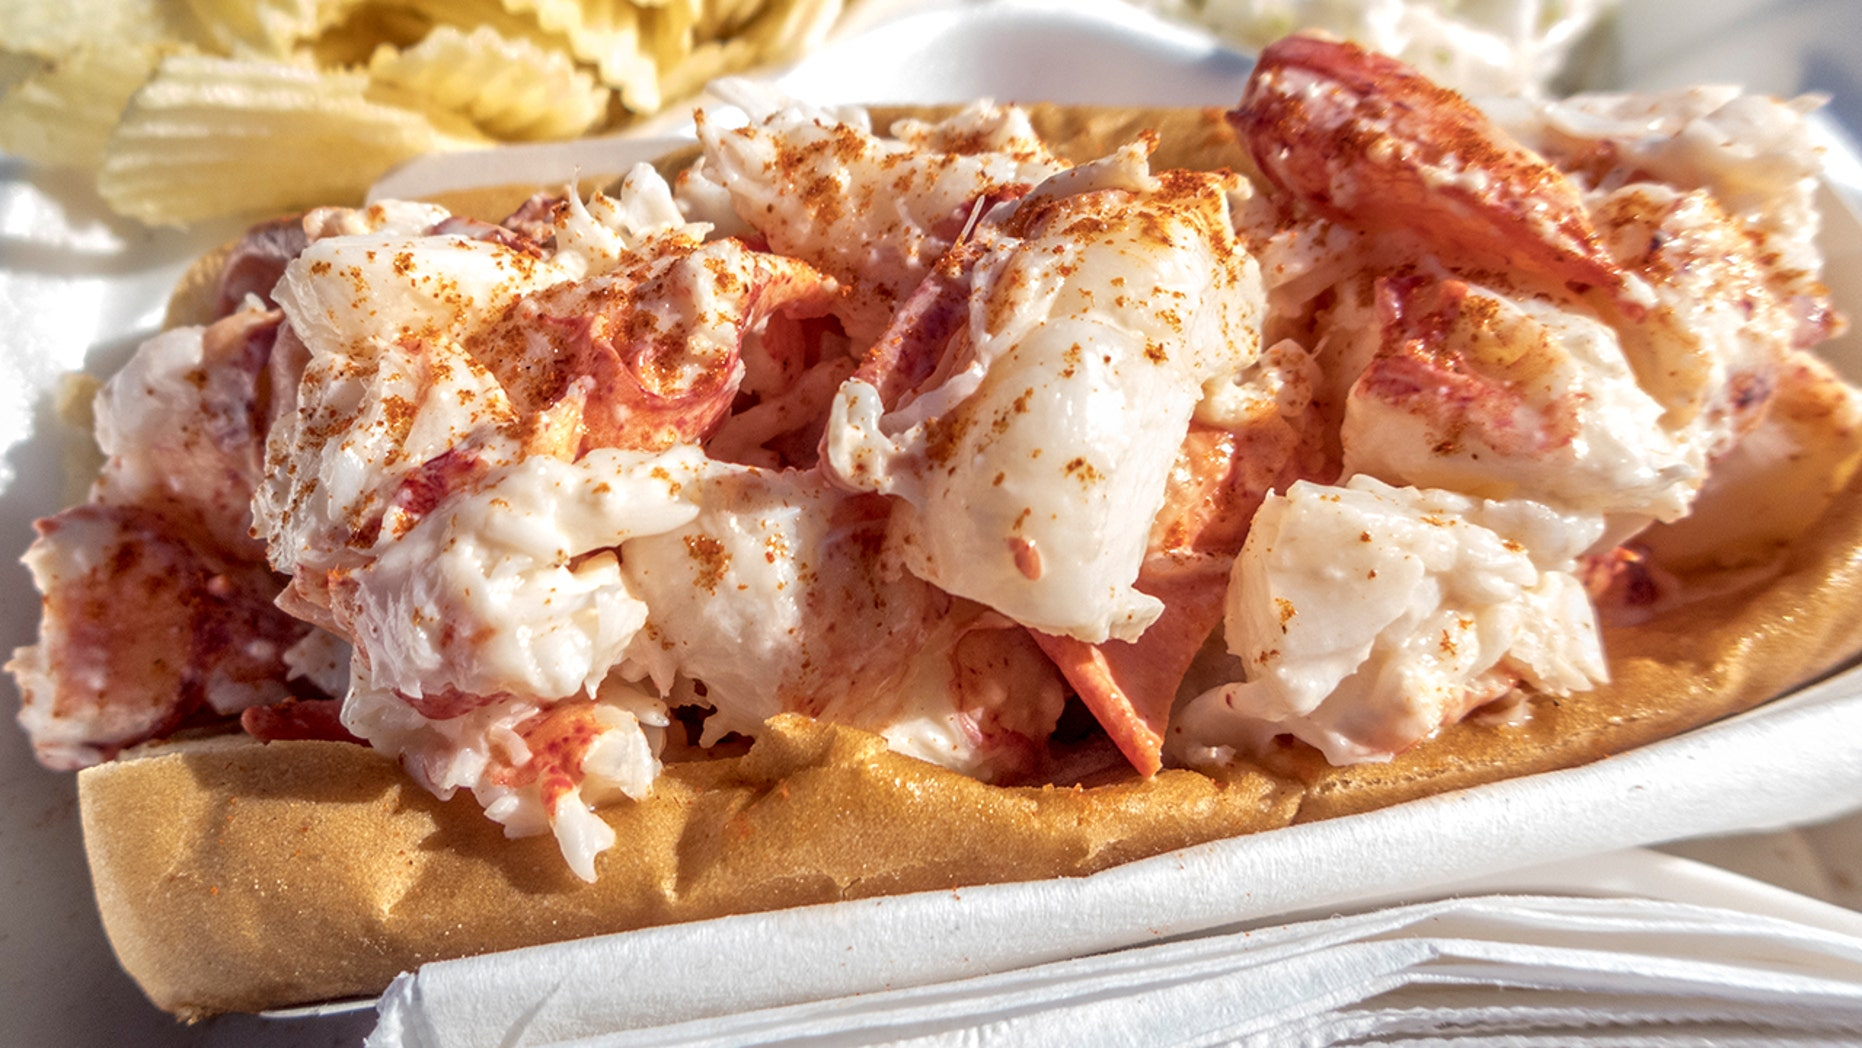 A lobster shortage is driving prices up, with lobster rolls costing as much as $49 at some restaurants.